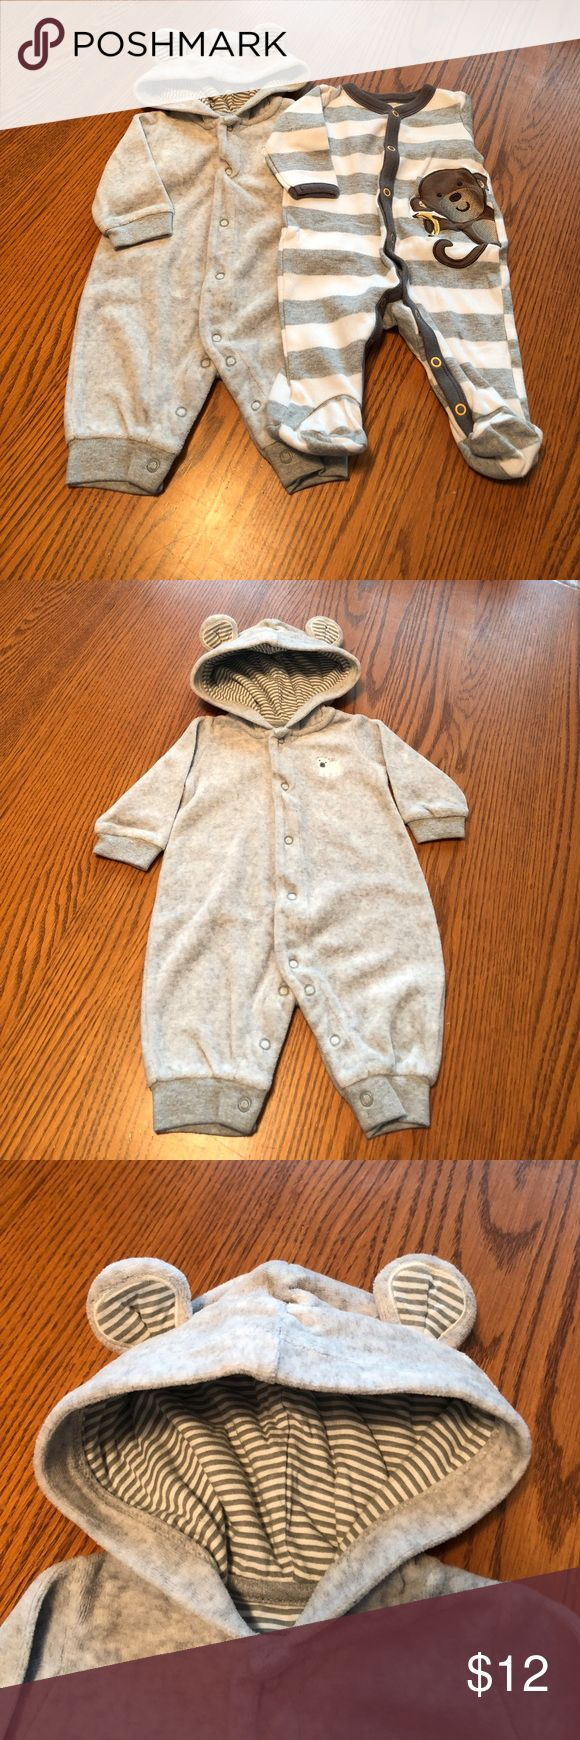 2 Pc Romper Bundle.                           NWOT 1st Romper is a Carter's, Lt. Gray, cute, soft & fuzzy w/ears on hood & a white bear on front. 2nd Romper is a Small Wonders, w/feet, Lt. Gray/white striped w/Monkey holding banana peaking off to the side. These are NWOT, has been washed in Dreft detergent & Downy fabric softener. Don't like the price? Make me a reasonable offer.                                                       JCTNB-49 Carter's & Small Wonders One Pieces